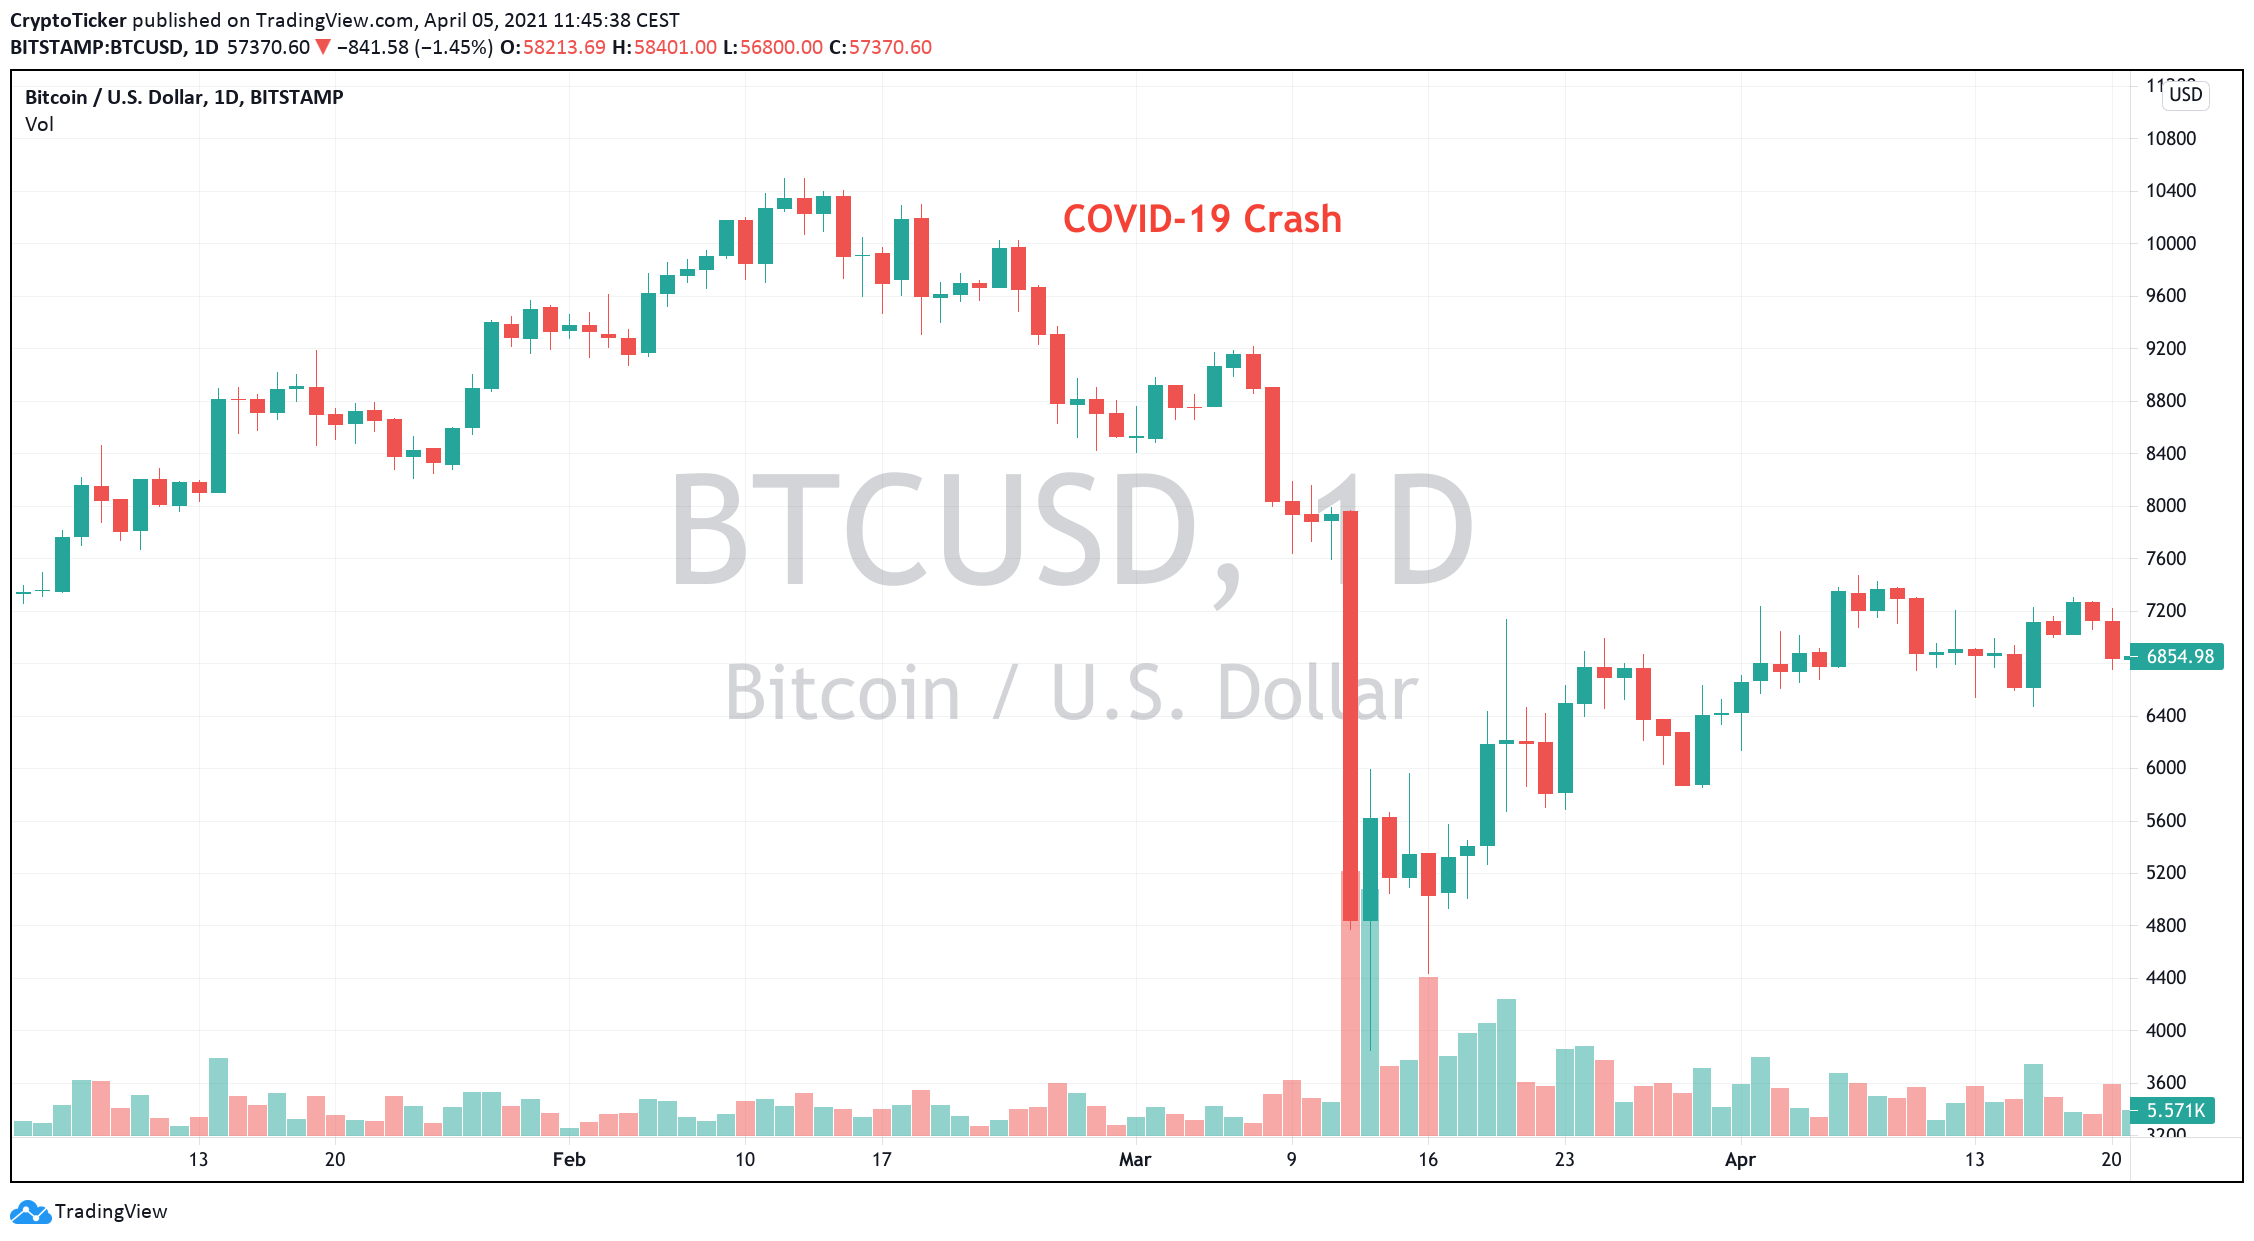 BTC/USD 1-day chart showing the COVID-19 crash in 2020